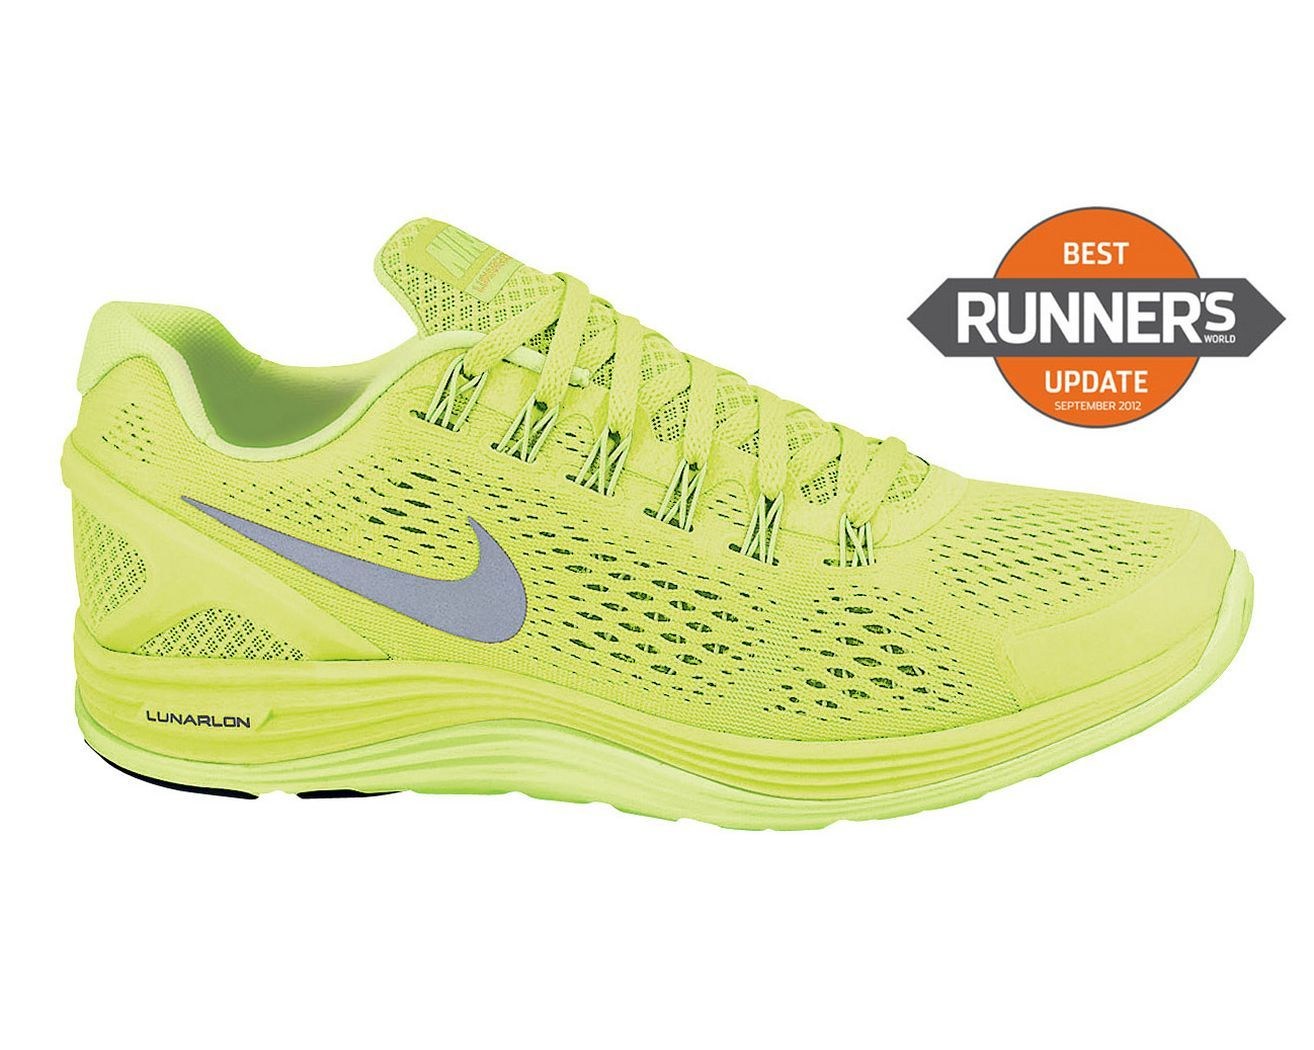 Womens Nike LunarGlide+ 4 Running Shoe at Road Runner Sports ... cfcc020bc